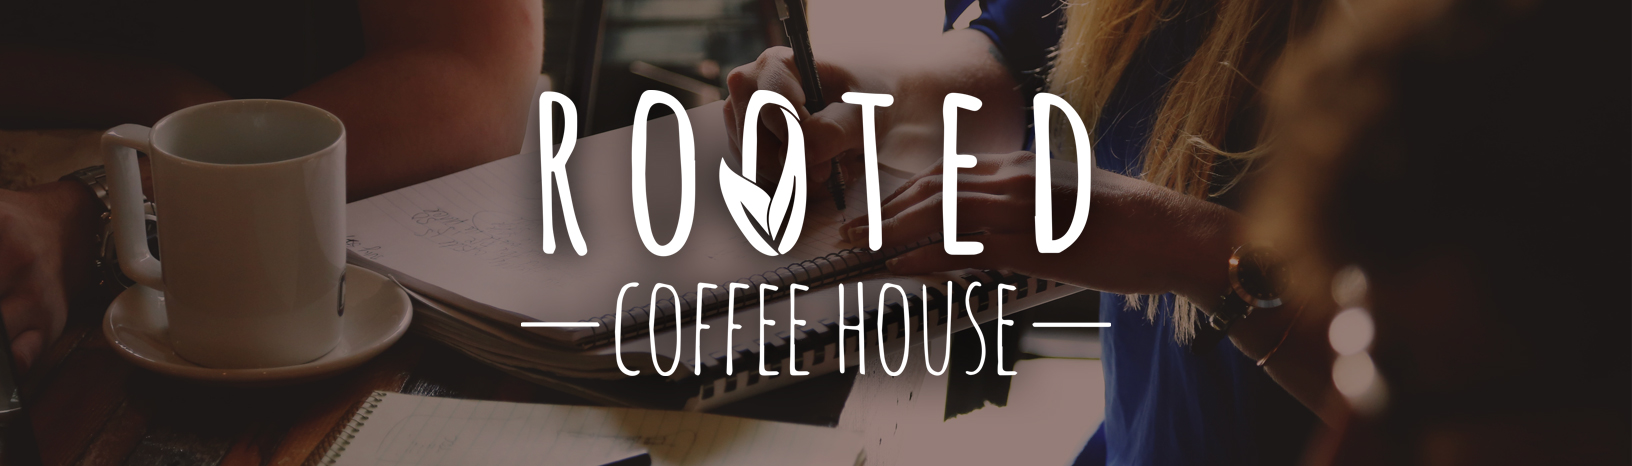 Rooted Coffee House banner ad